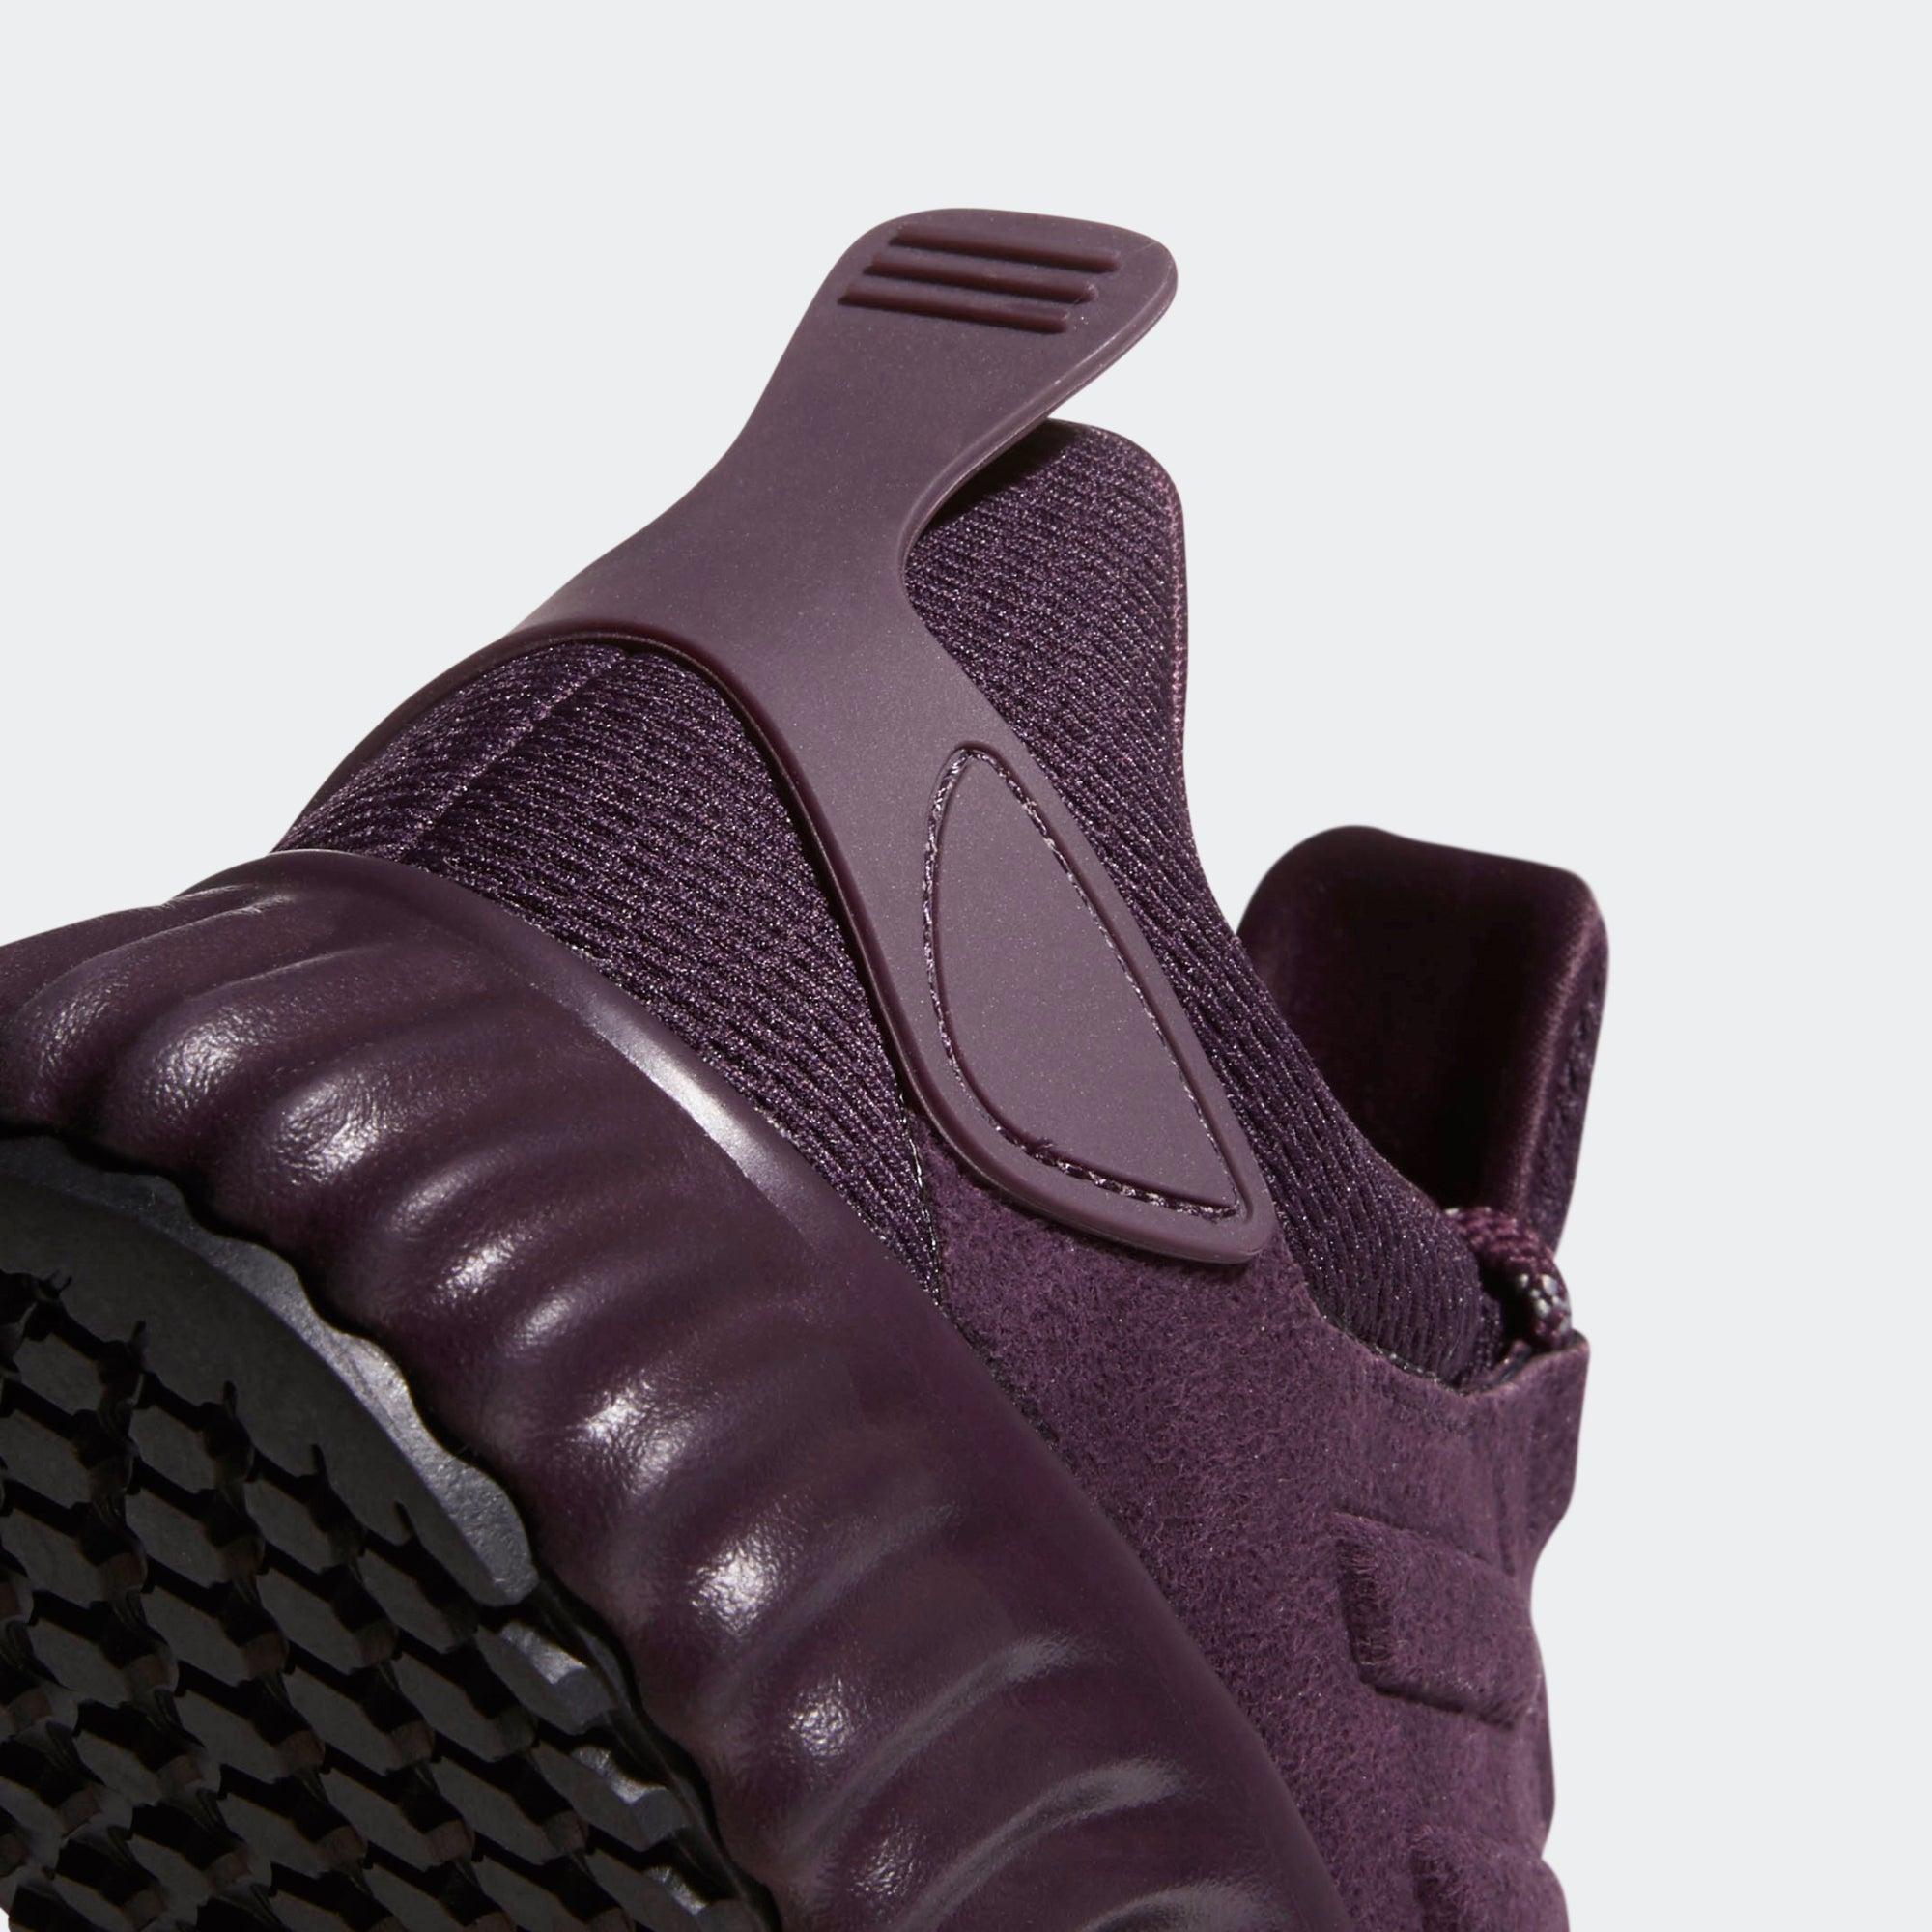 official photos 03bc5 5f089 Women's Adidas Running Alphabounce City Shoes Noble Red - 7.5 / BURGUNDY